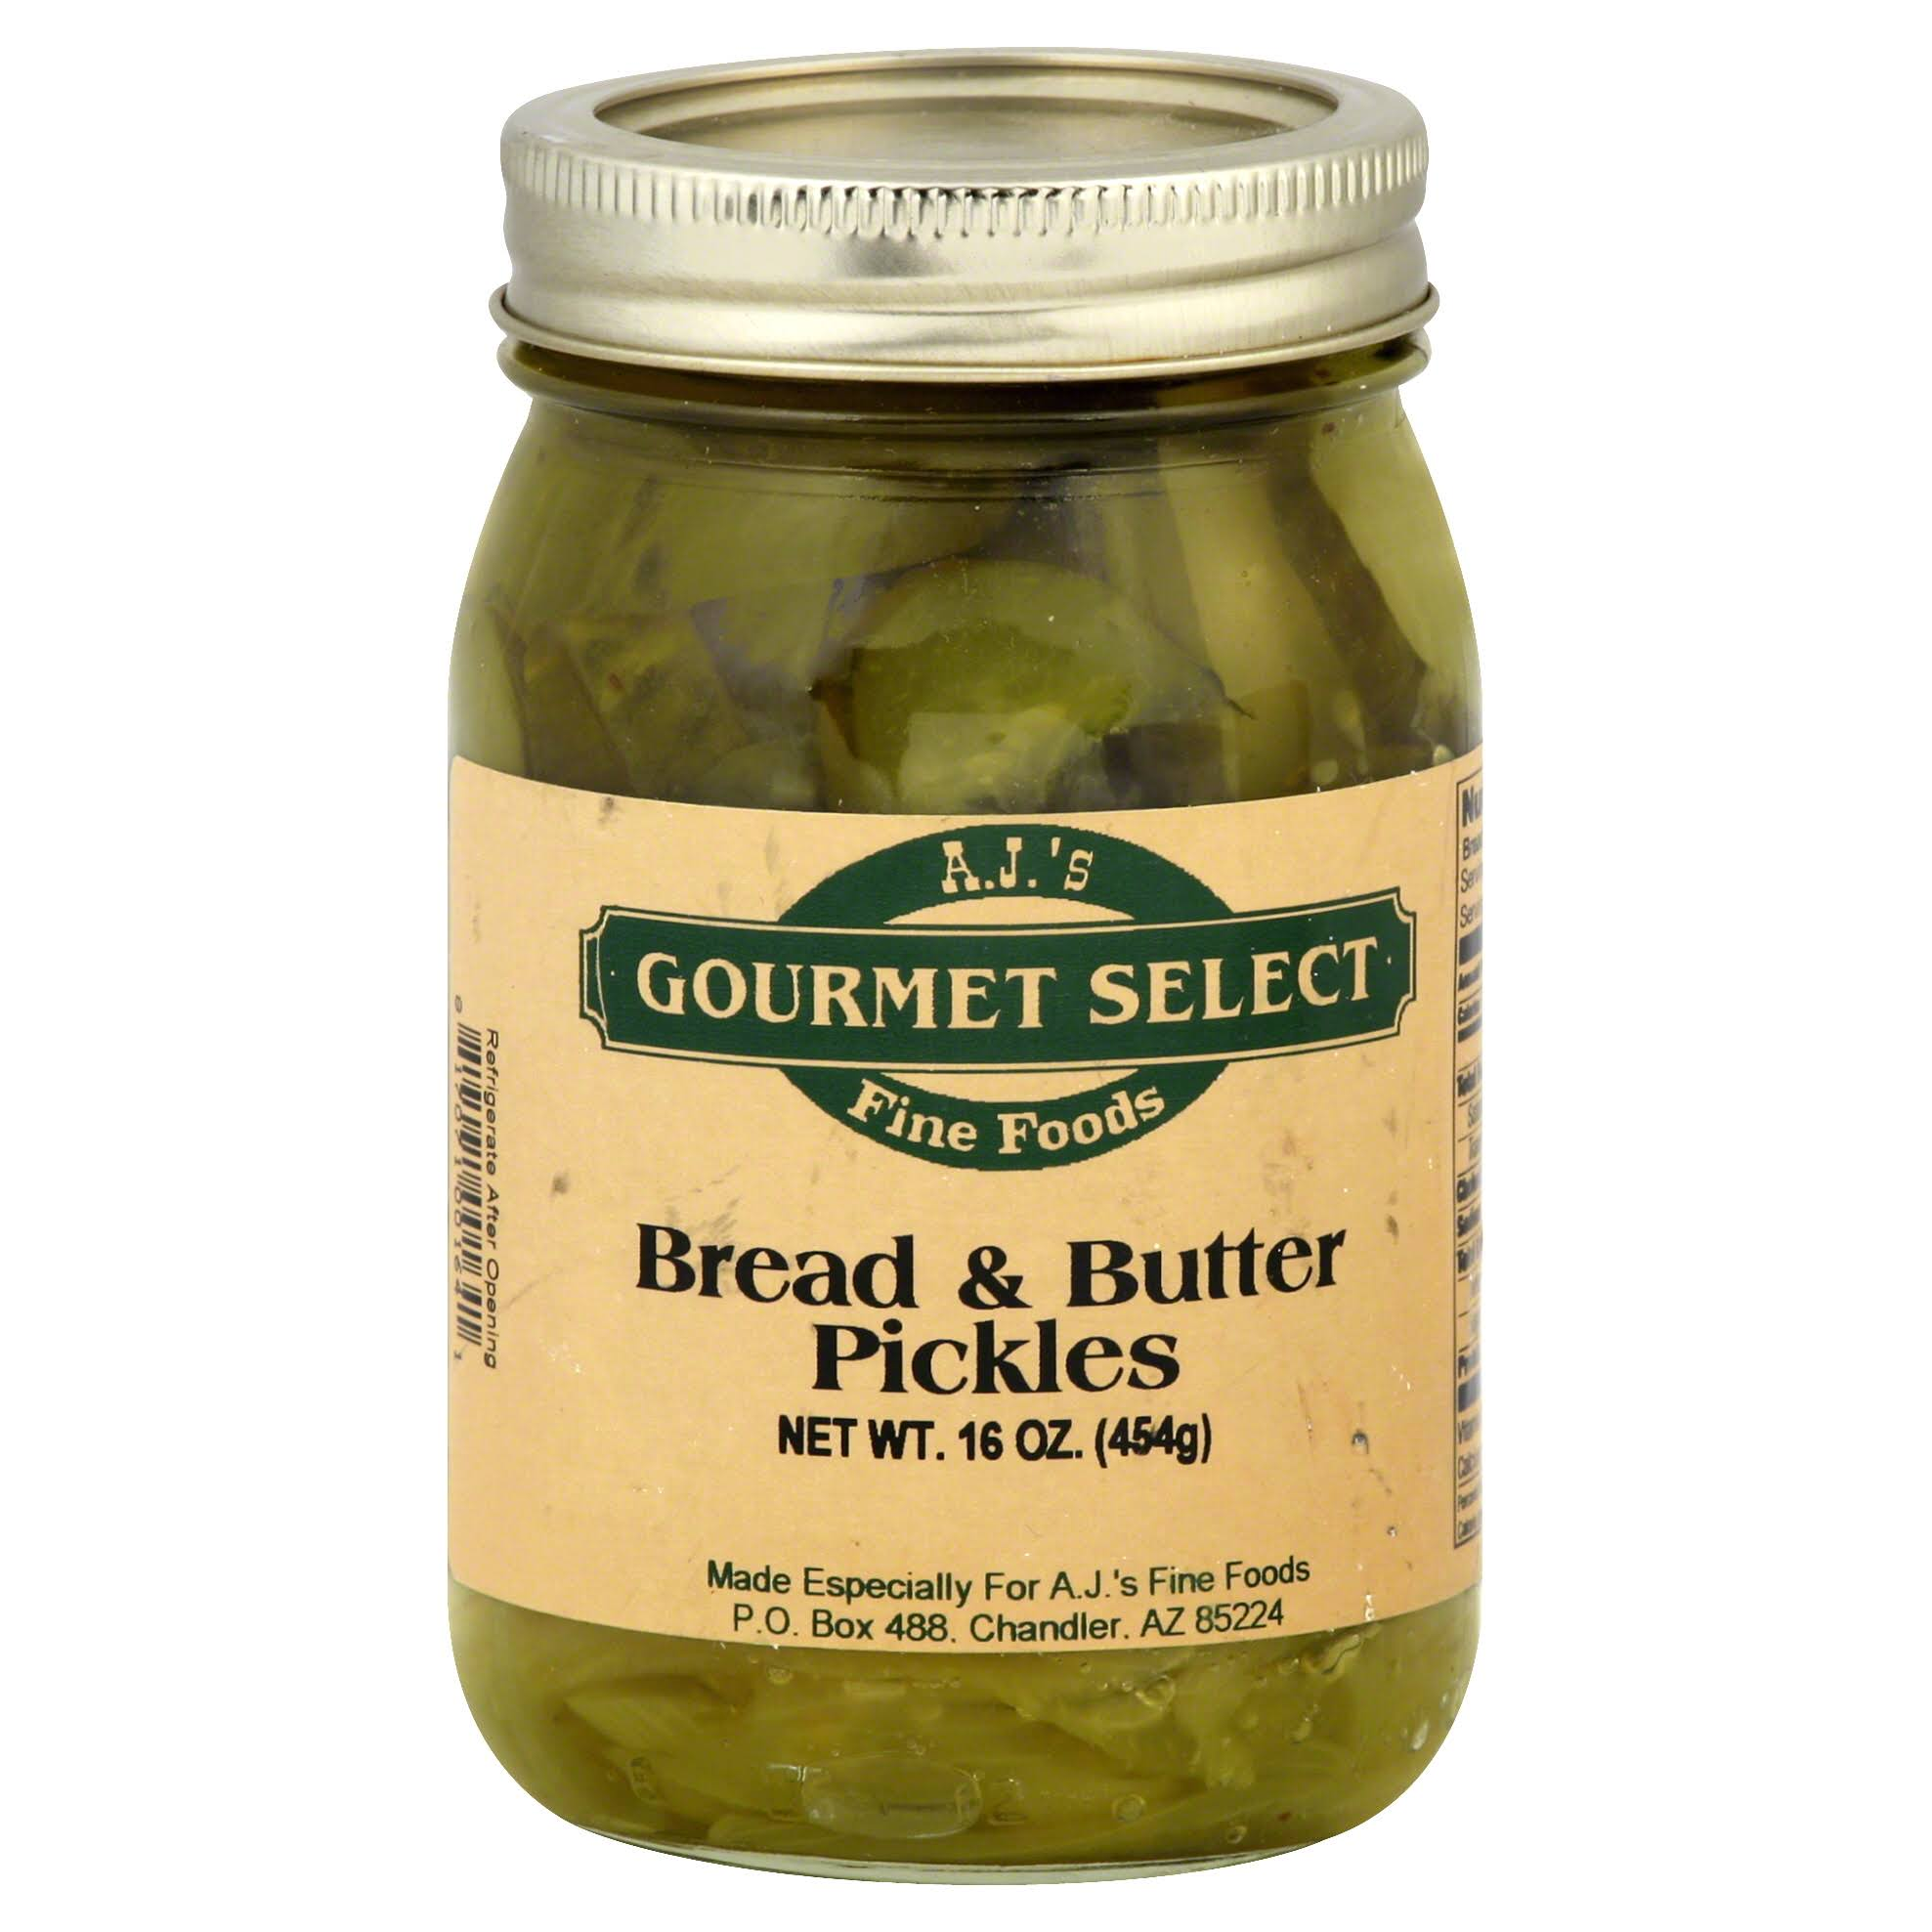 Gourmet Select Gourmet Select Pickles, Bread & Butter - 16 oz